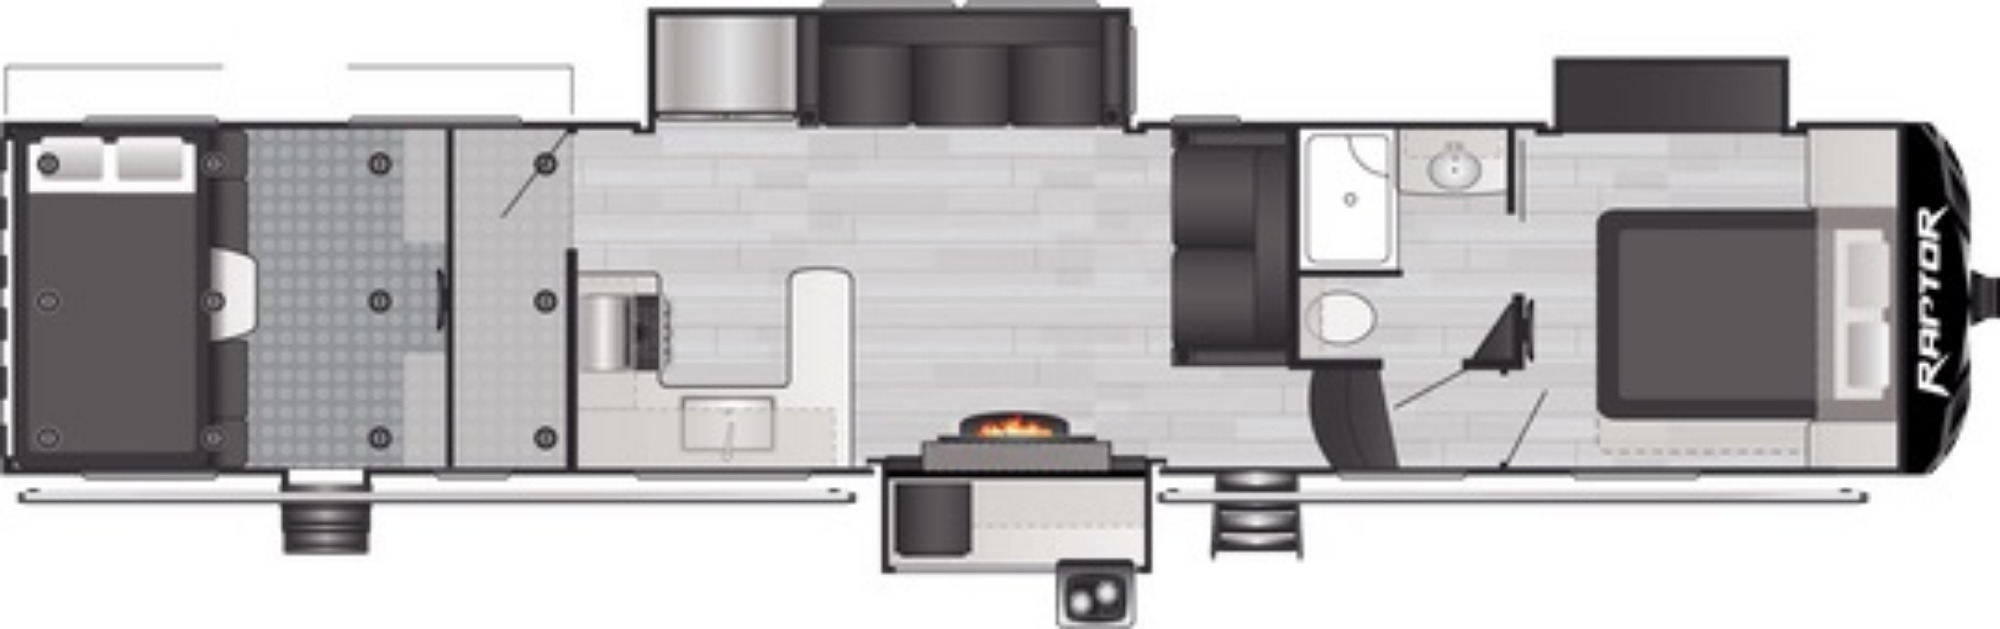 View Floor Plan for 2021 KEYSTONE RAPTOR 423